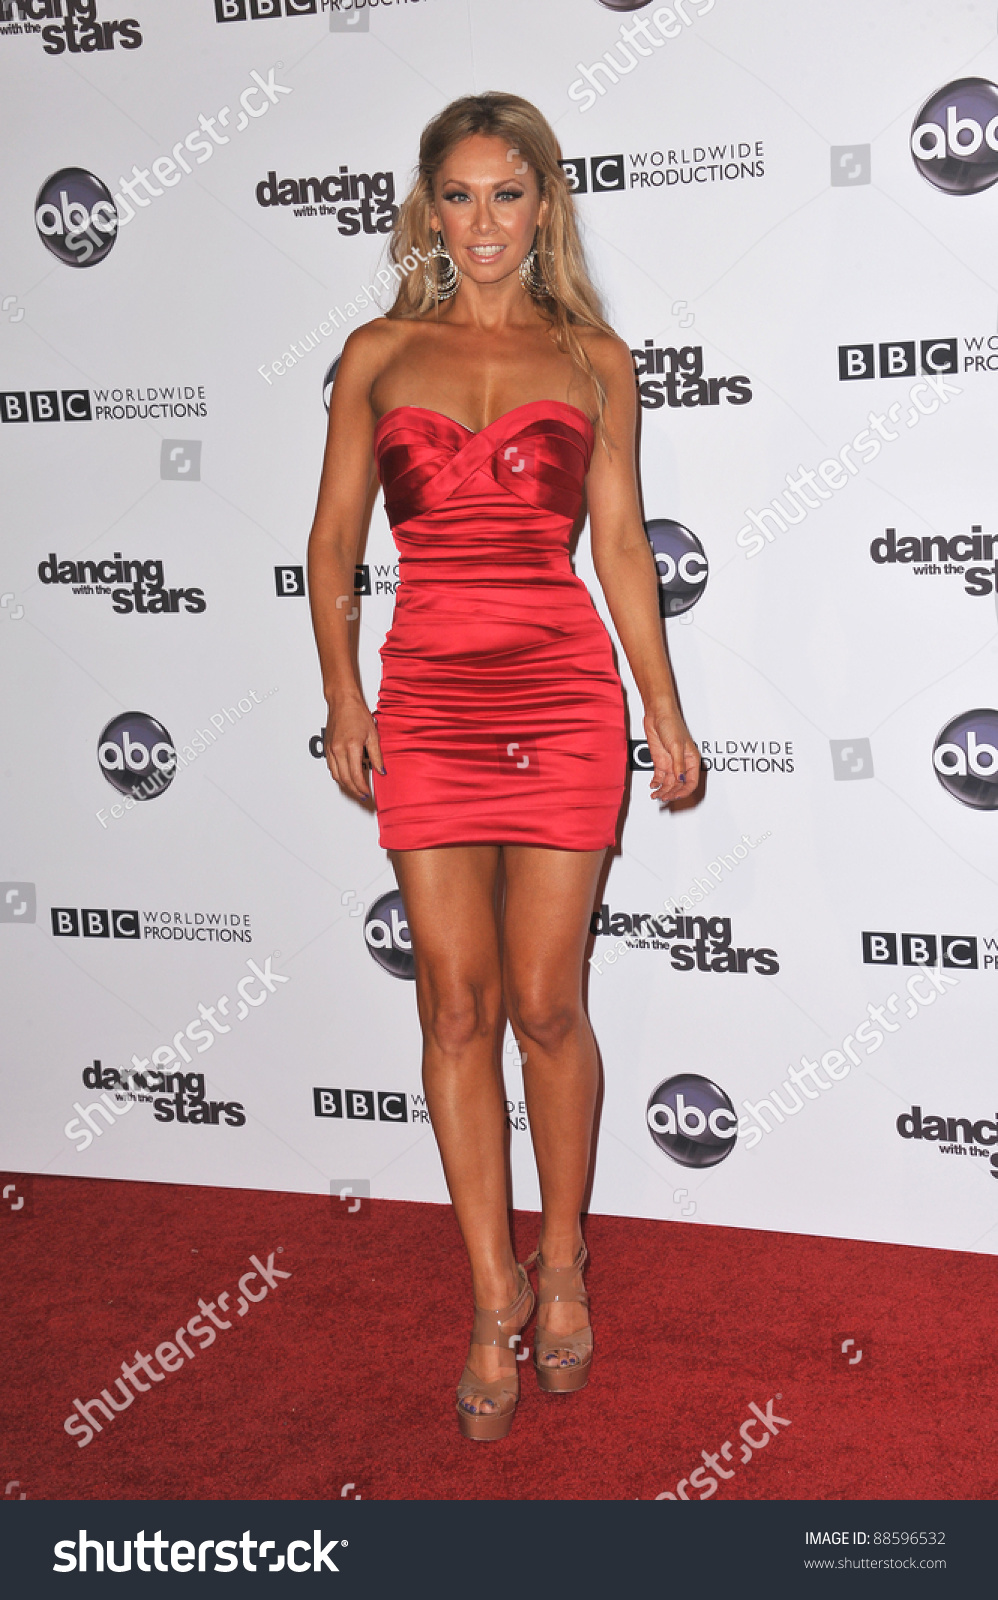 Kym Johnson Dancing With The Stars Married: Kym Johnson 200th Episode Party Dancing Stock Photo